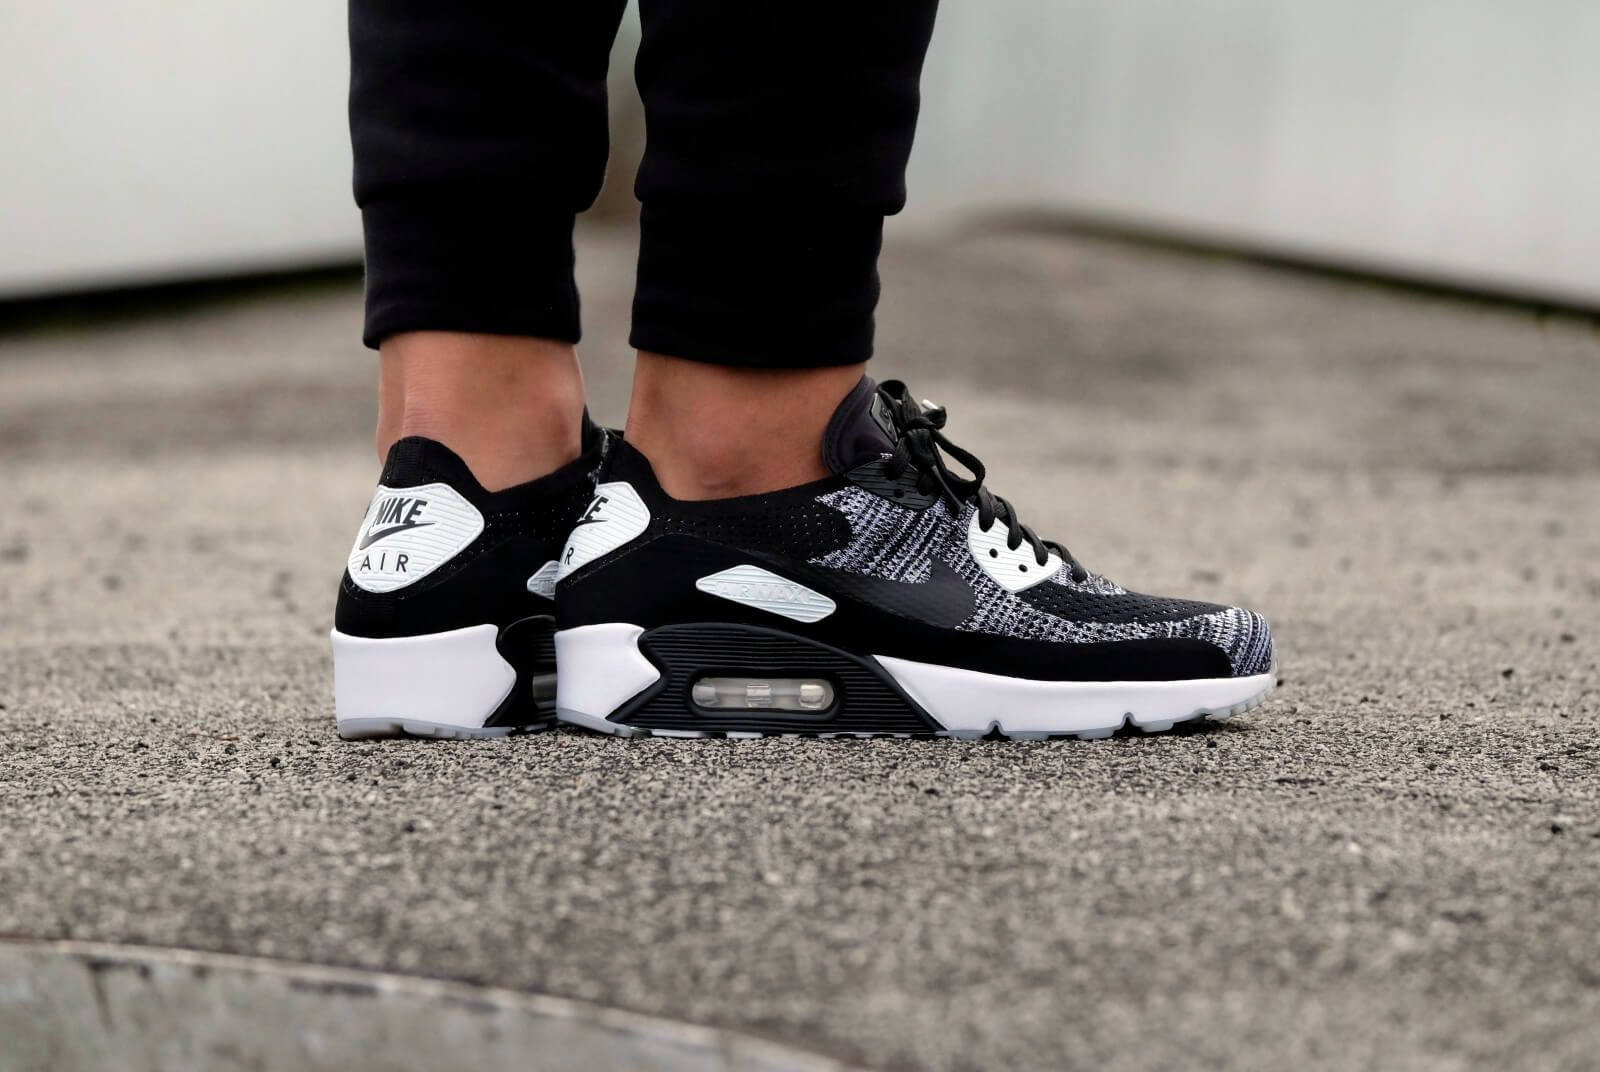 Nike Air Max 90 Ultra 2.0 Flyknit BlackBlack White 875943